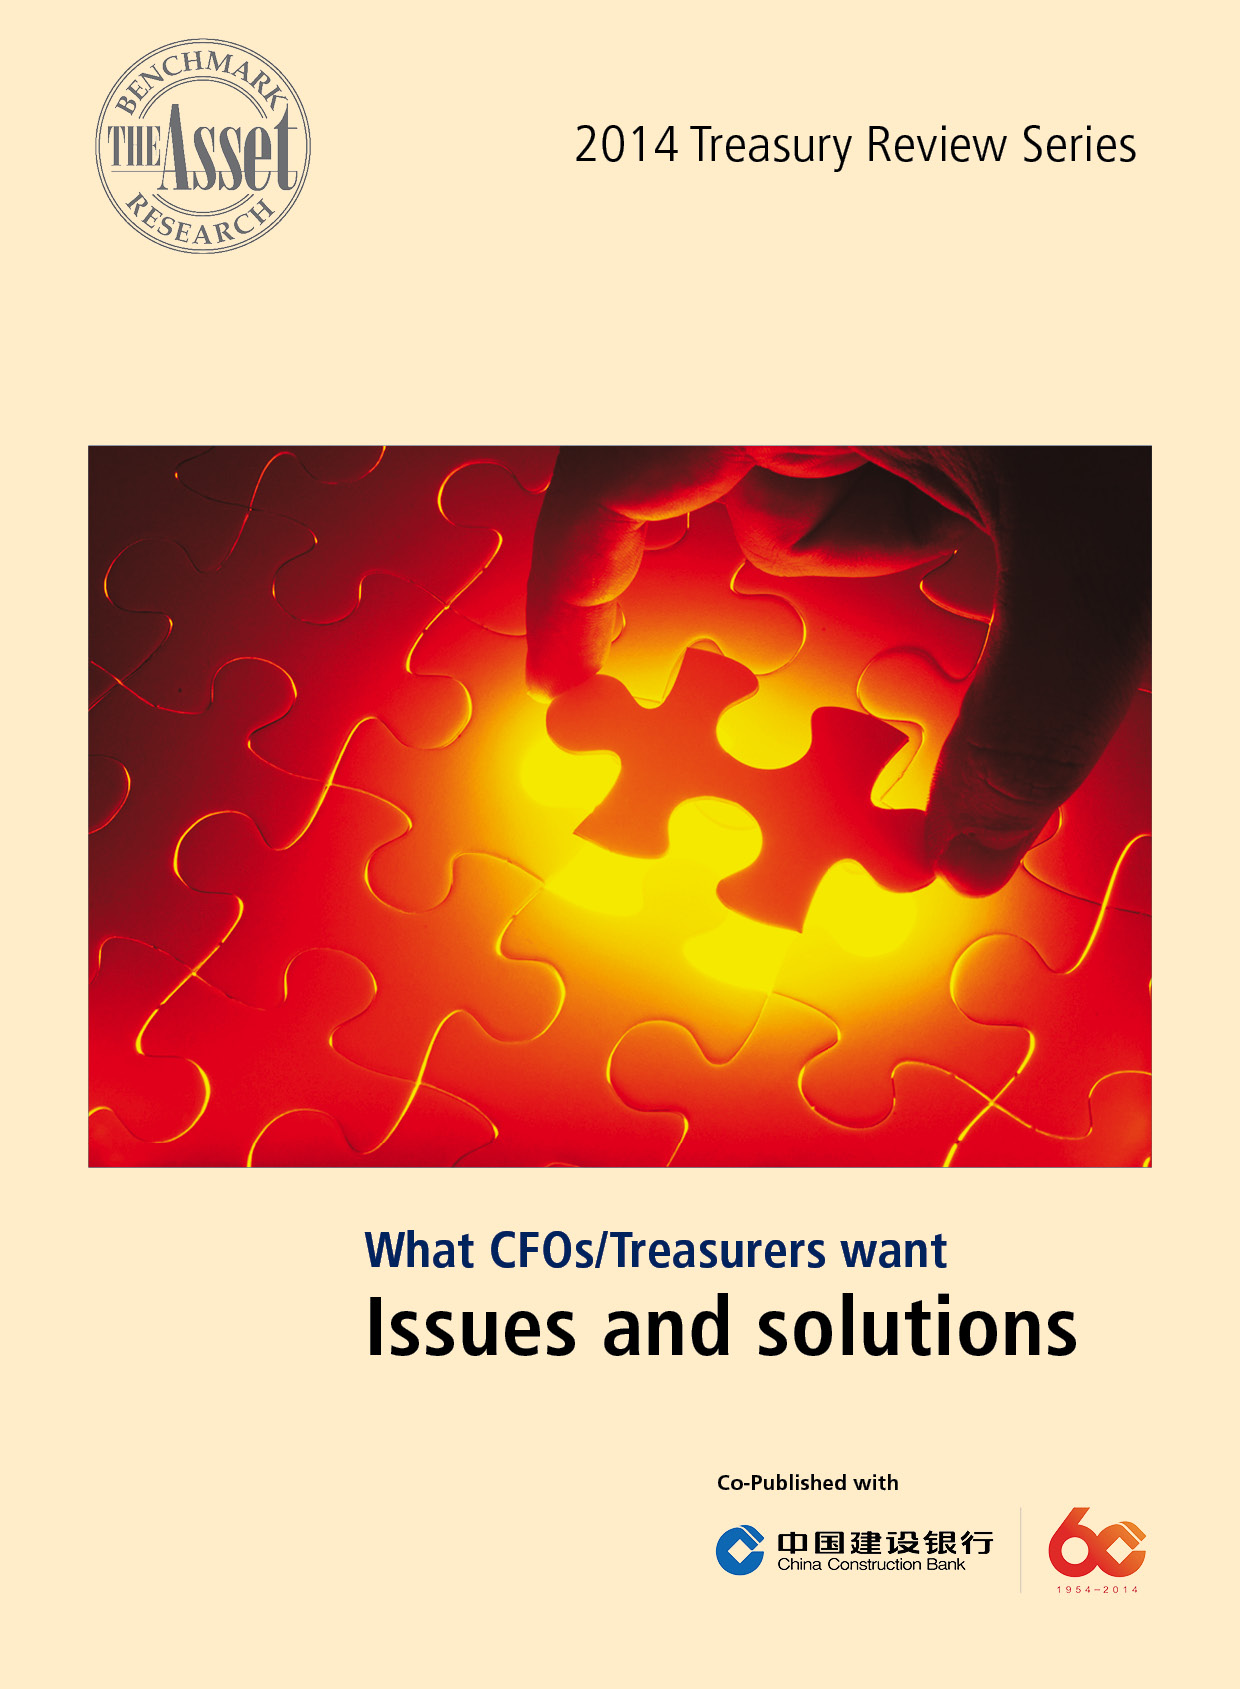 What CFOs/Treasurers want